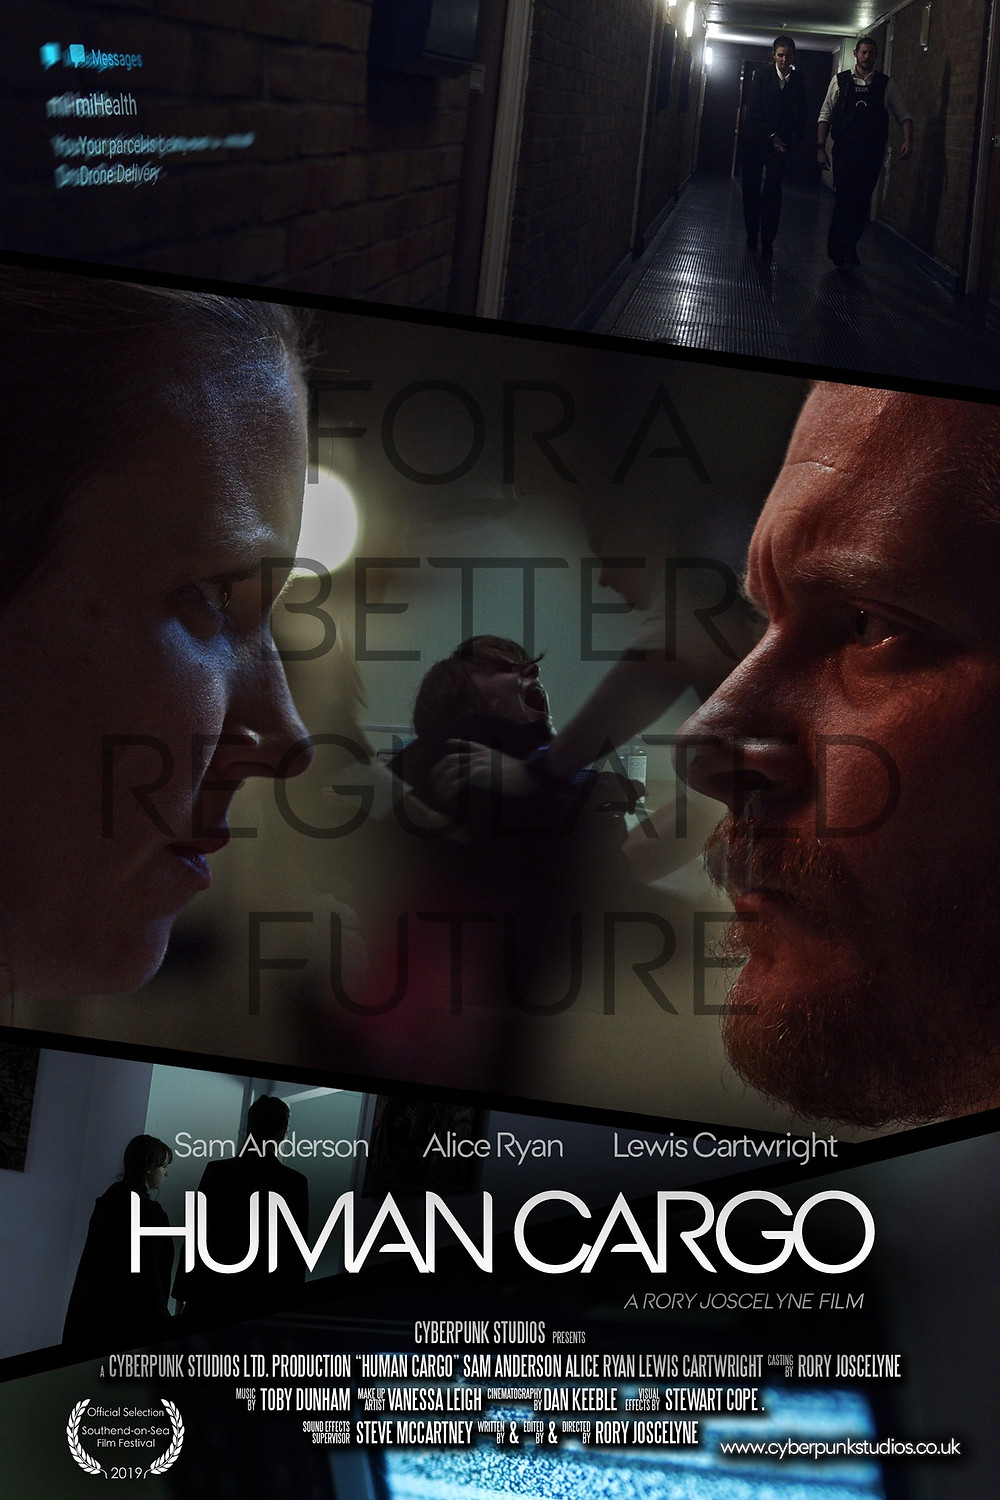 Two enforcement officers, who work on policing the birthing rates in a futuristic Britain, look fiercely into each other's eyes. The film's title 'Human Cargo' in bold lettering at the bottom.